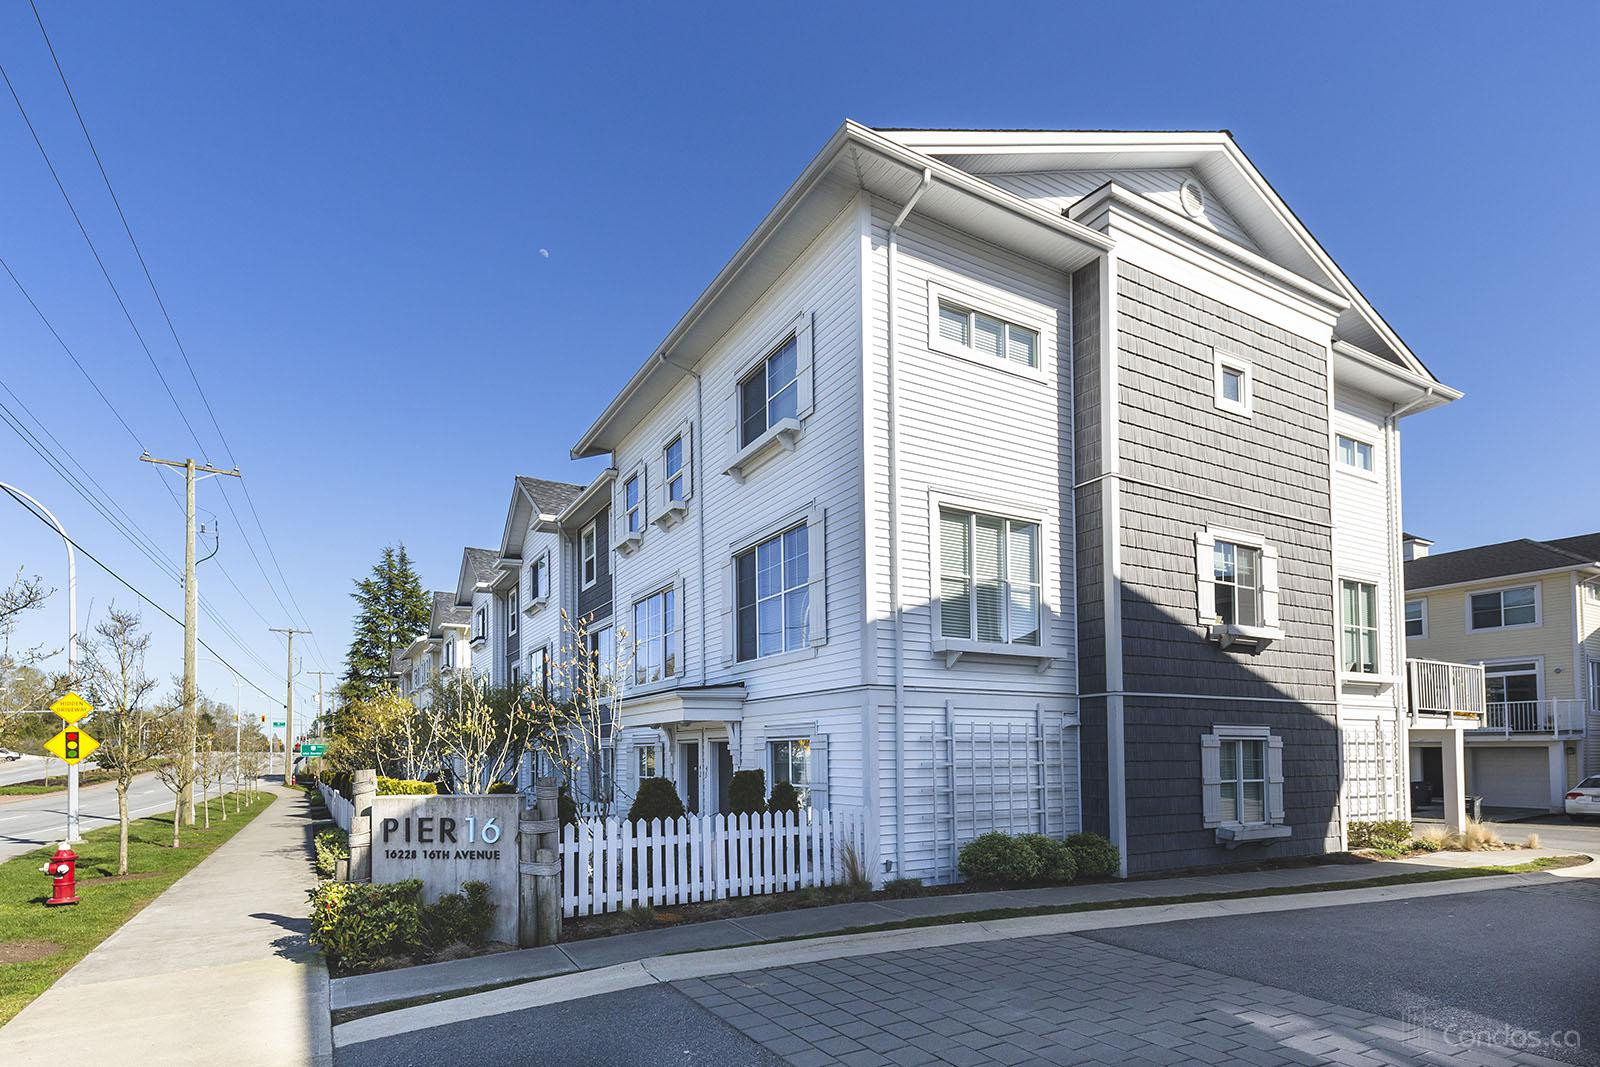 Pier 16 at 16228 16 Ave, Surrey 1